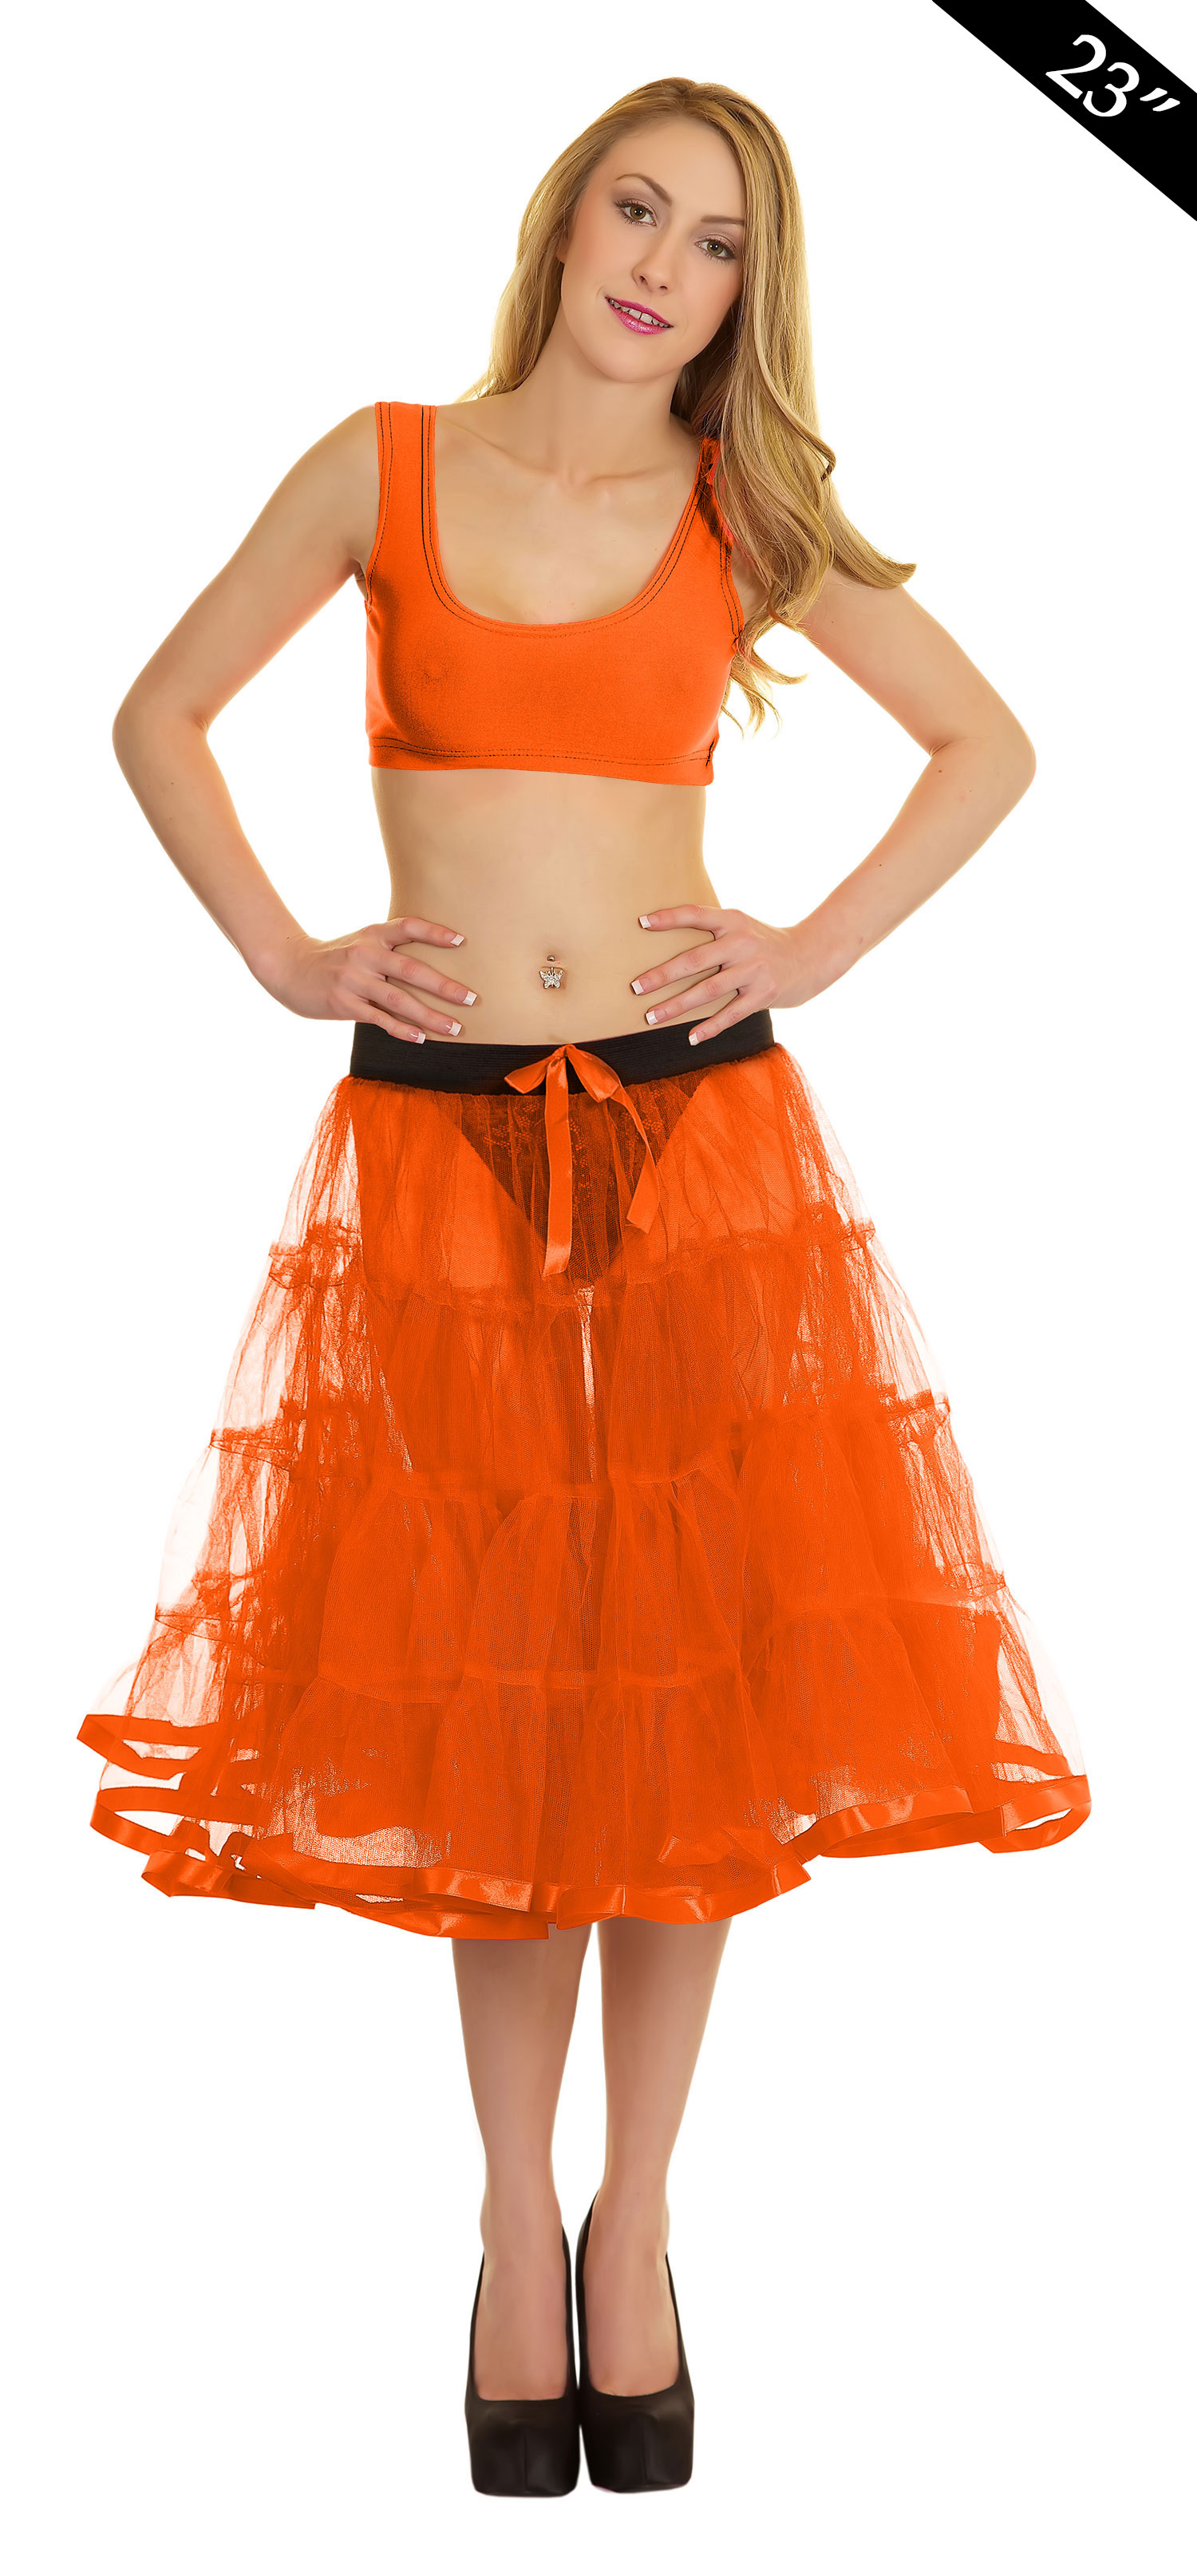 Crazy Chick 4 Tier Petticoat with Ribbon Orange TuTu Skirt (Approximately 23 Inches Long)